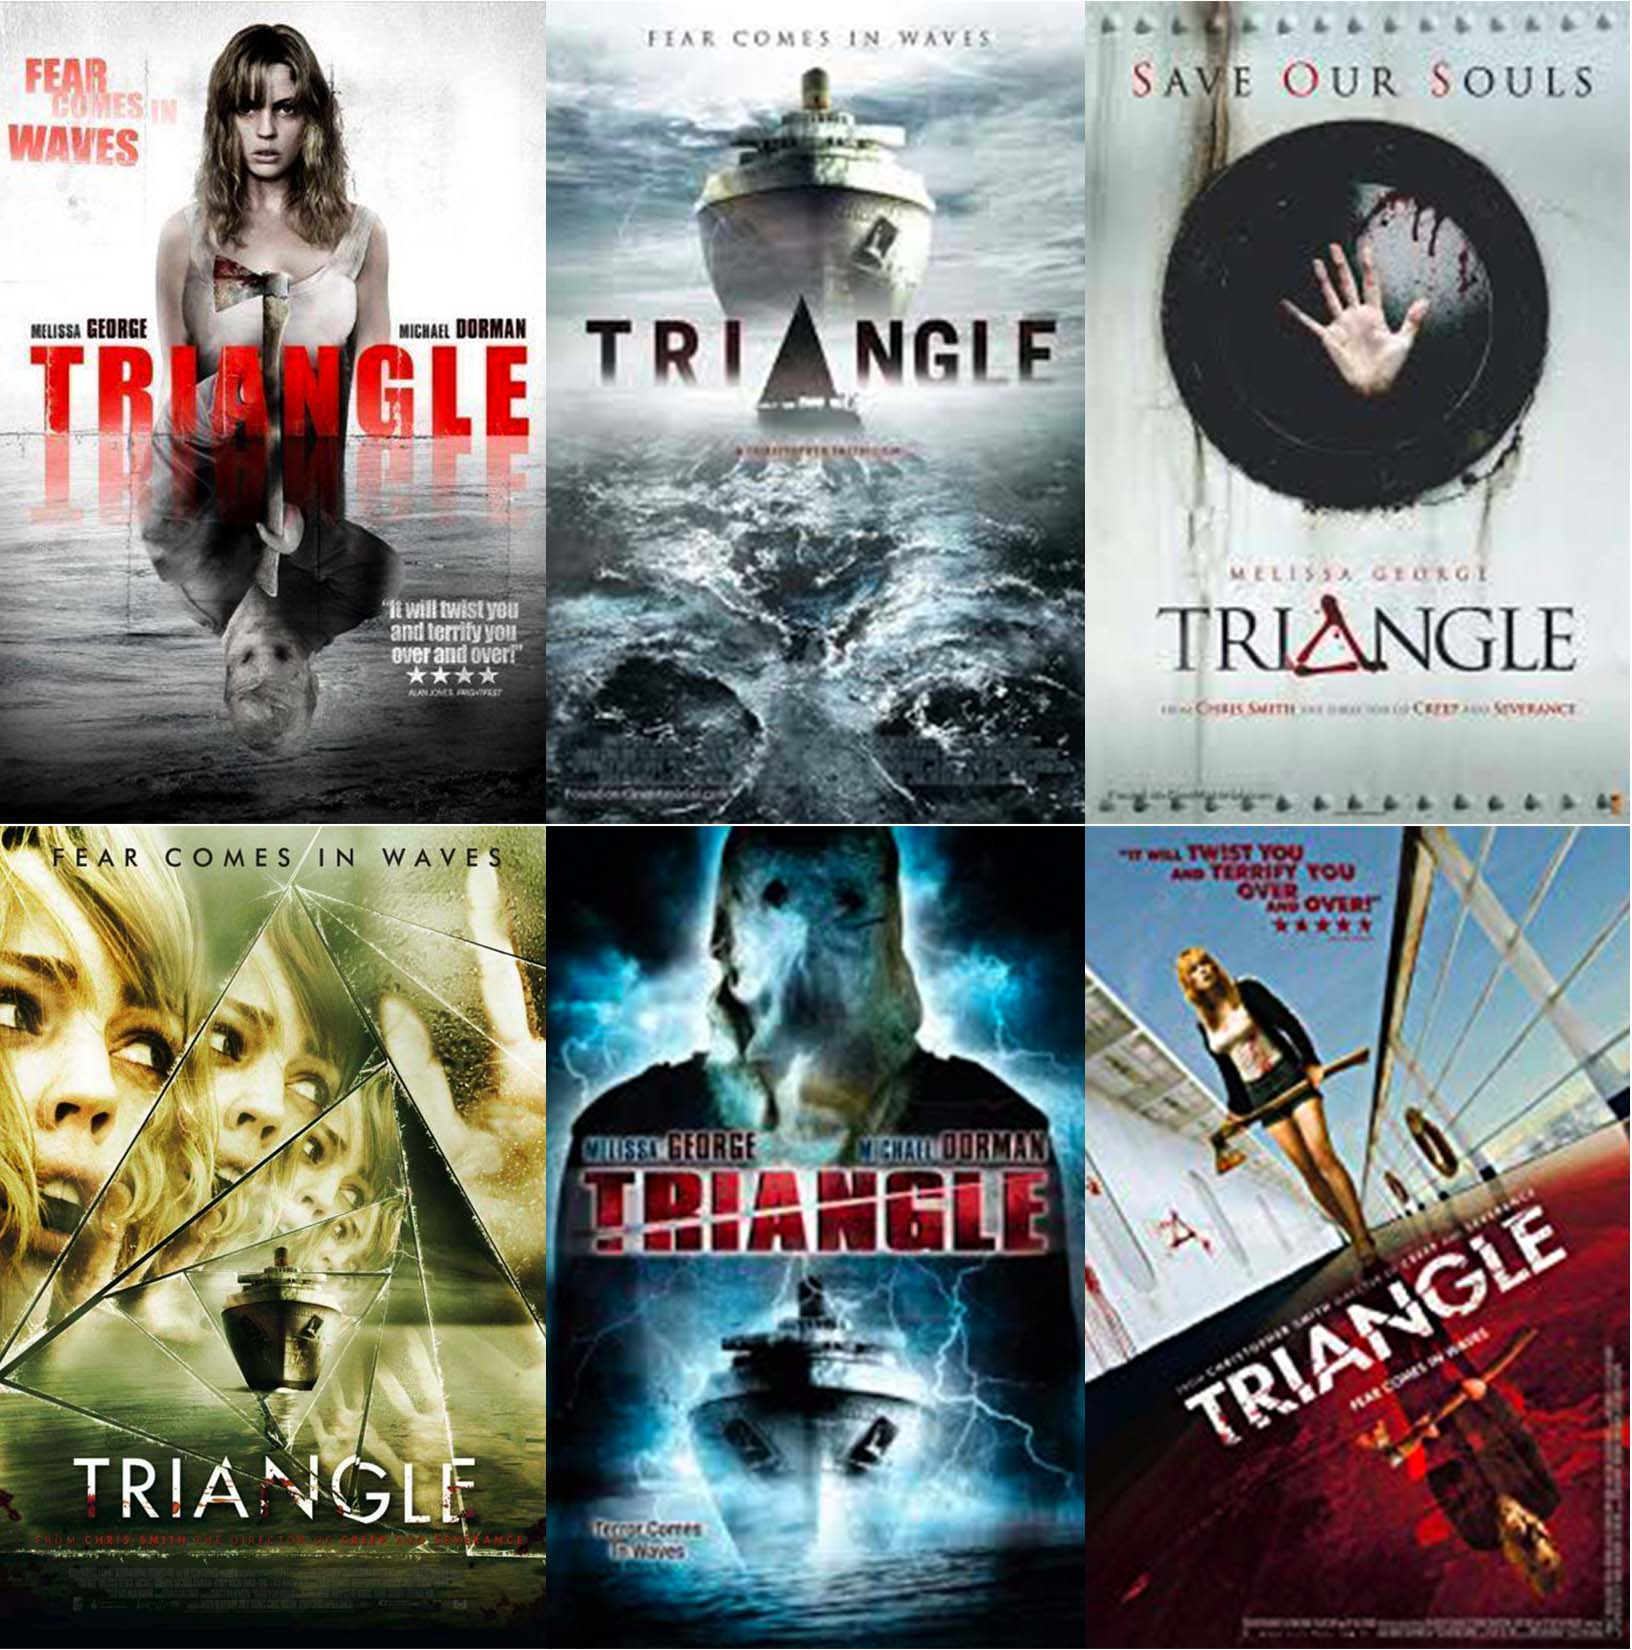 Triangle 2009 movie posters